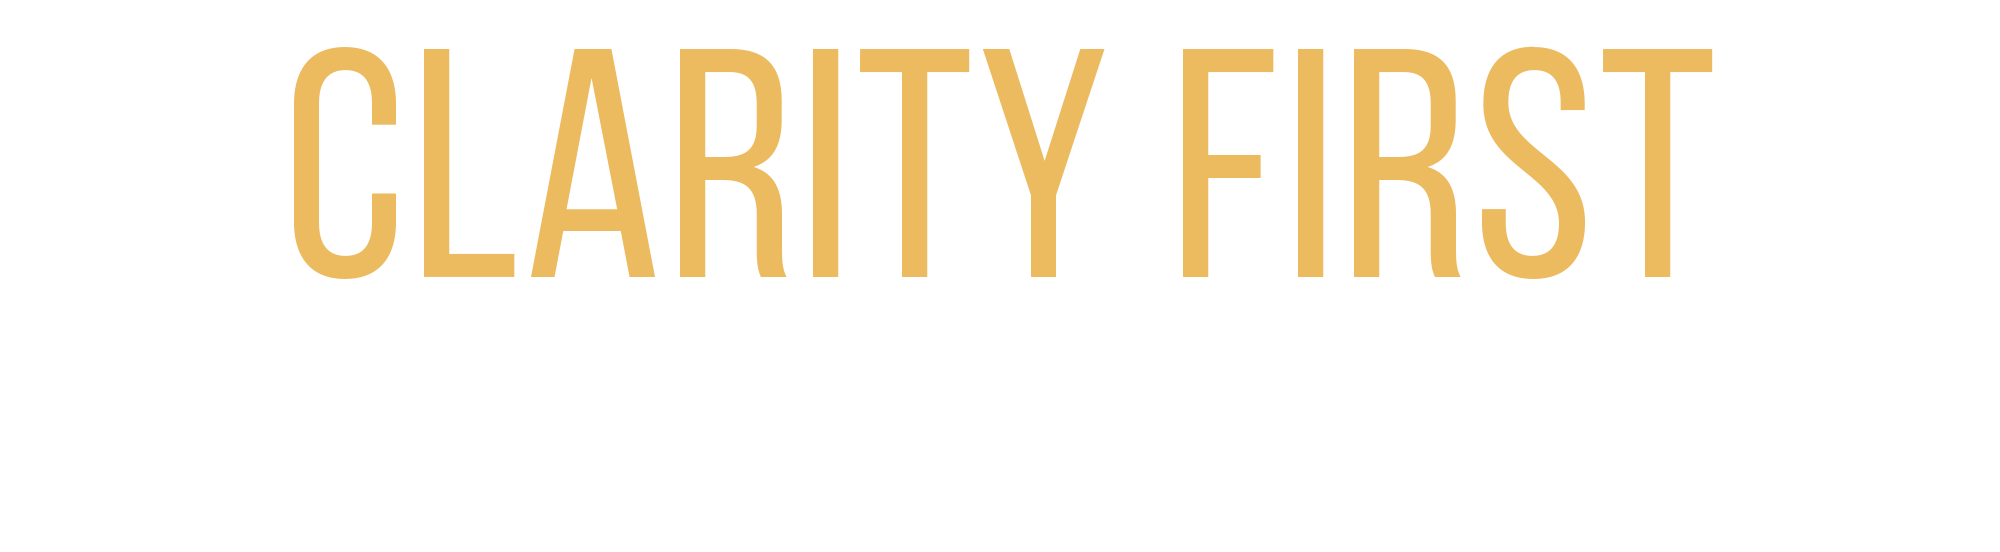 Clarity First Program